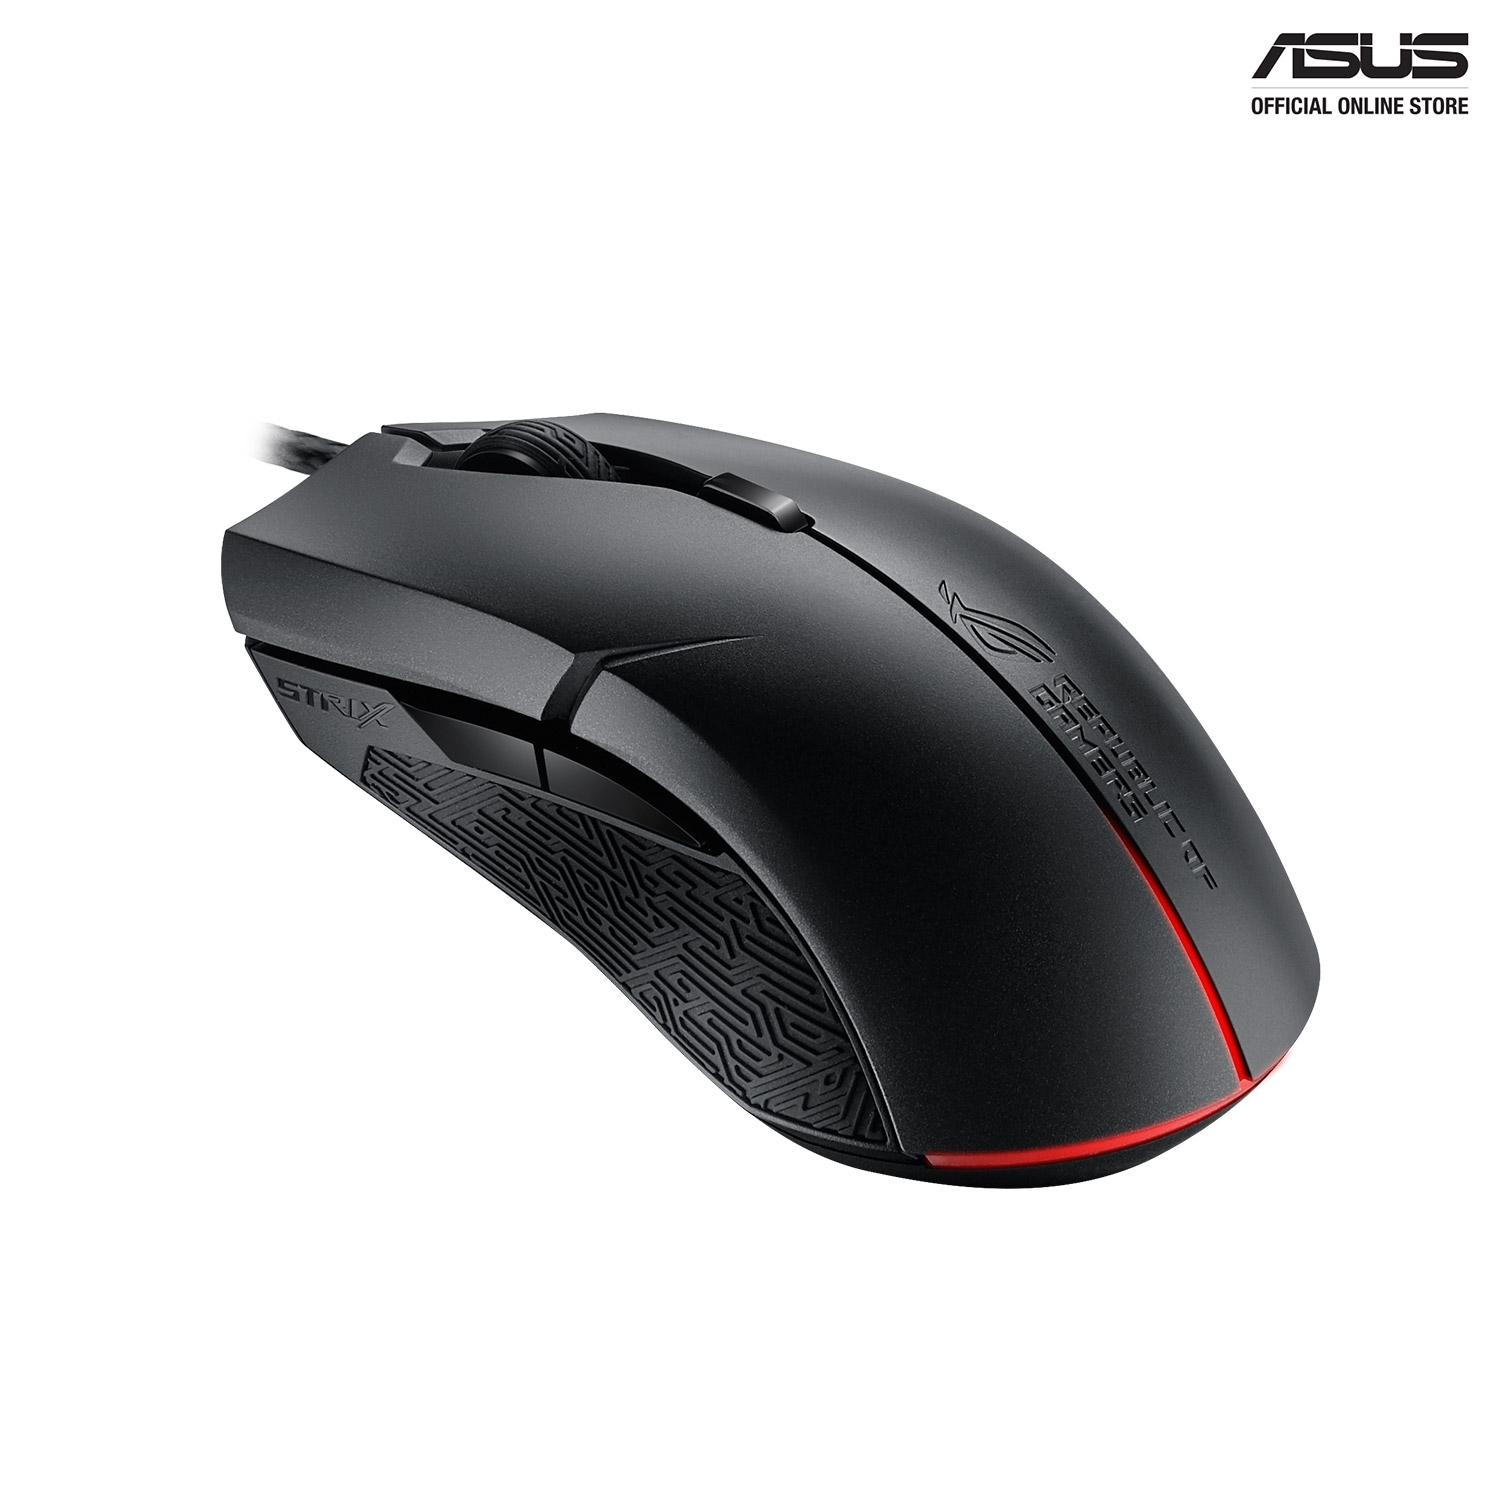 Latest Asus Mice Products Enjoy Huge Discounts Lazada Sg Bluray Writer Internal Bw 16d1ht Strix Evolve Optical Gaming Mouse Featuring Changeable Top Covers To Enable Four Different Ergonomic Styles